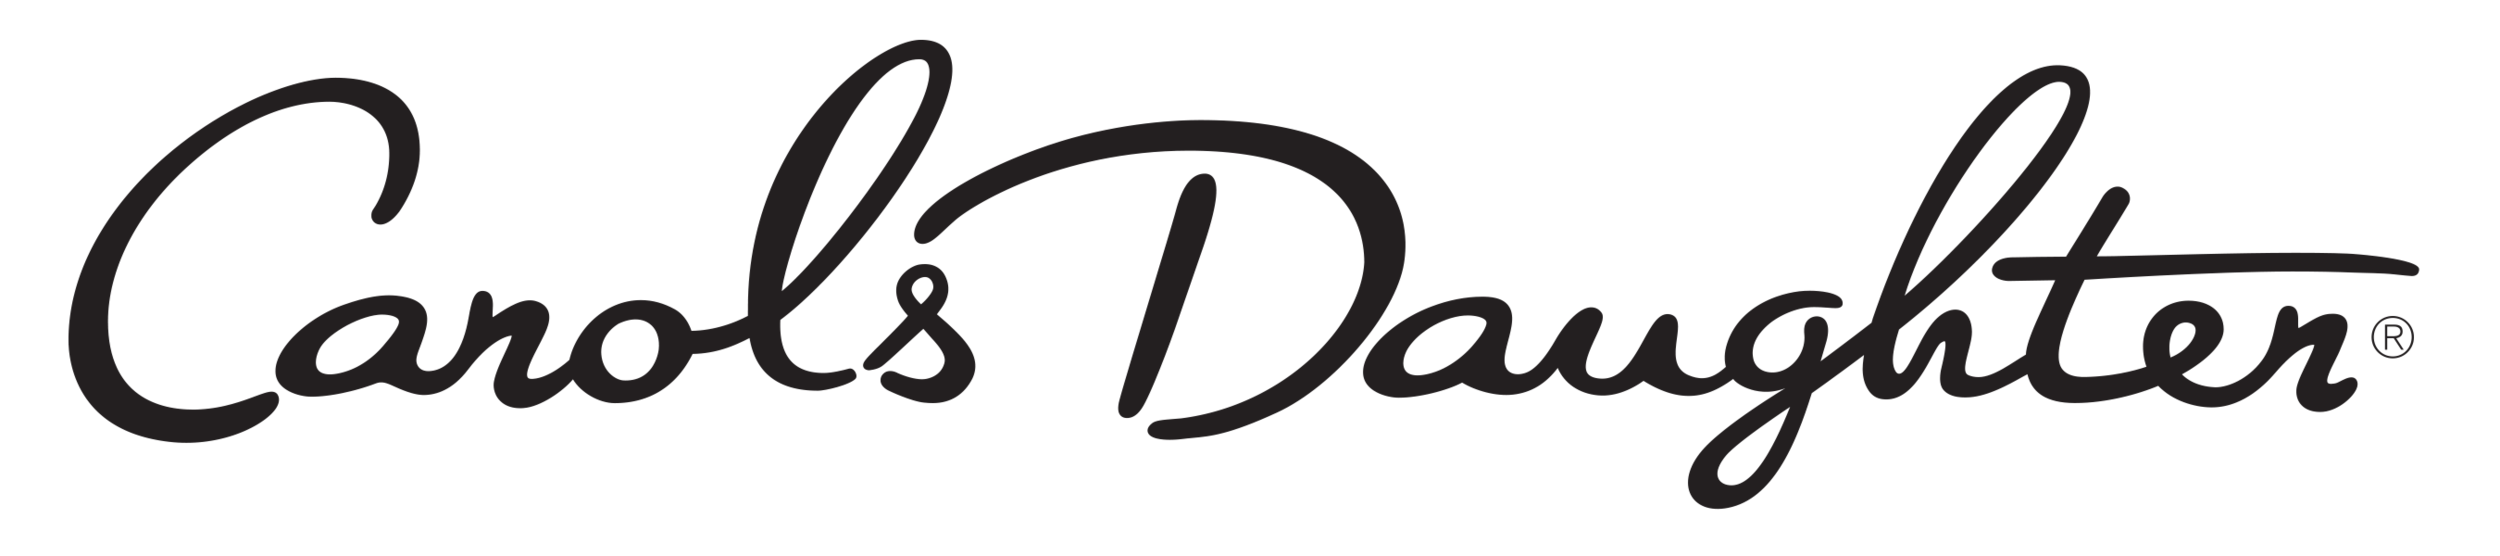 CD_Logo_Black on Clear background.png